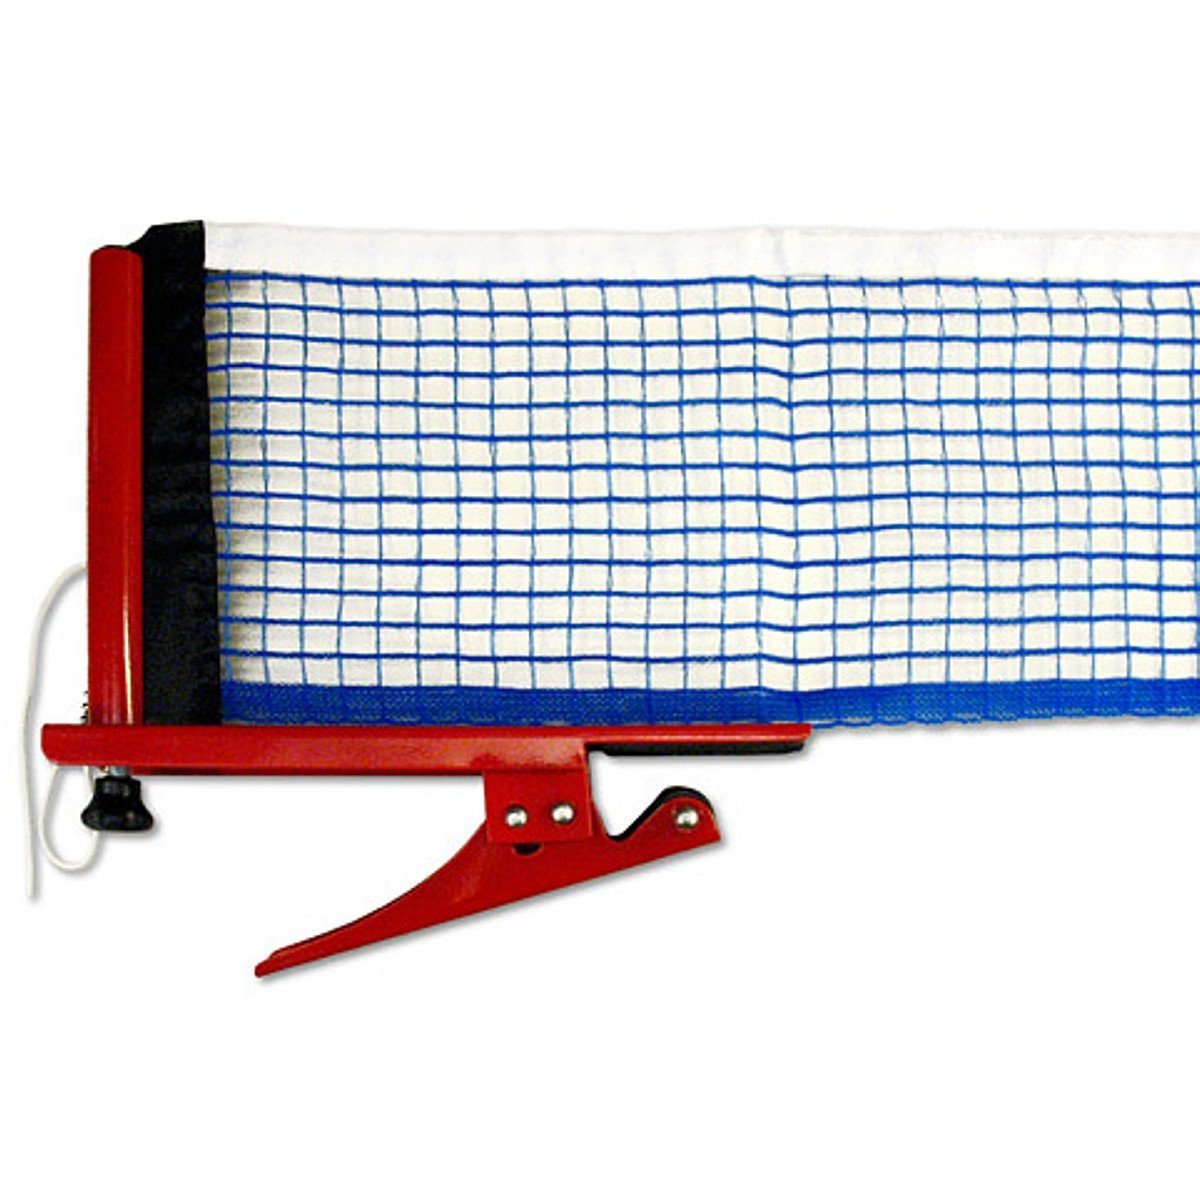 Amazon.com  Killerspin Table Tennis Clip-On Net \u0026 Post Set - Definitely the Easiest Net \u0026 Post Set to Assemble  Ping Pong Net  Sports \u0026 Outdoors  sc 1 st  Amazon.com & Amazon.com : Killerspin Table Tennis Clip-On Net \u0026 Post Set ...